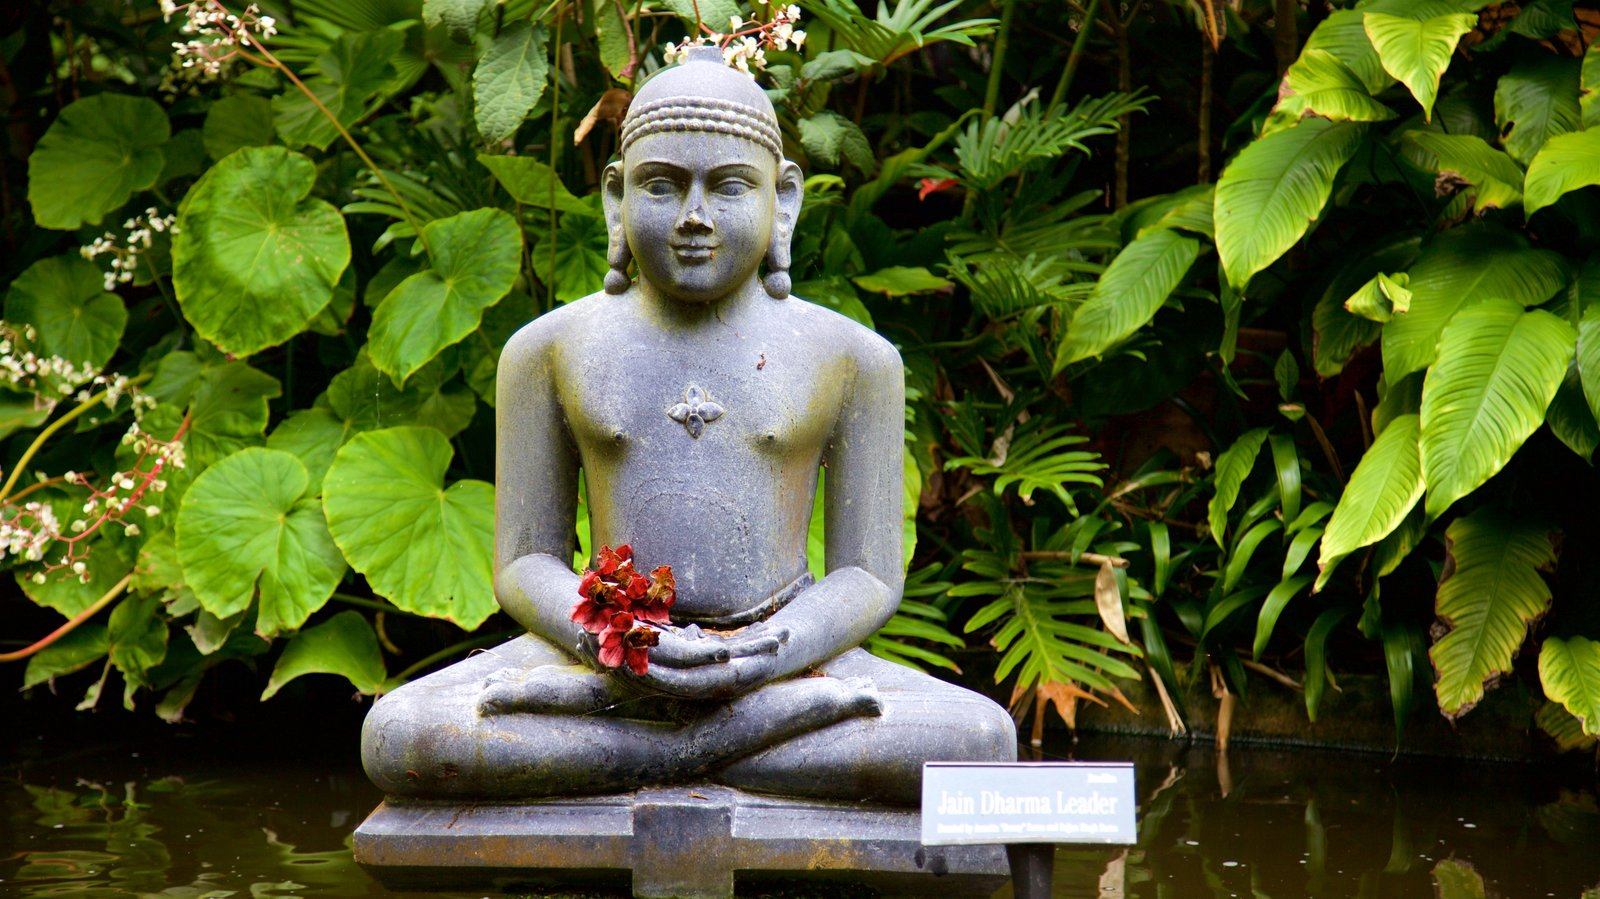 Marie Selby Botanical Gardens showing flowers, a garden and a statue or sculpture